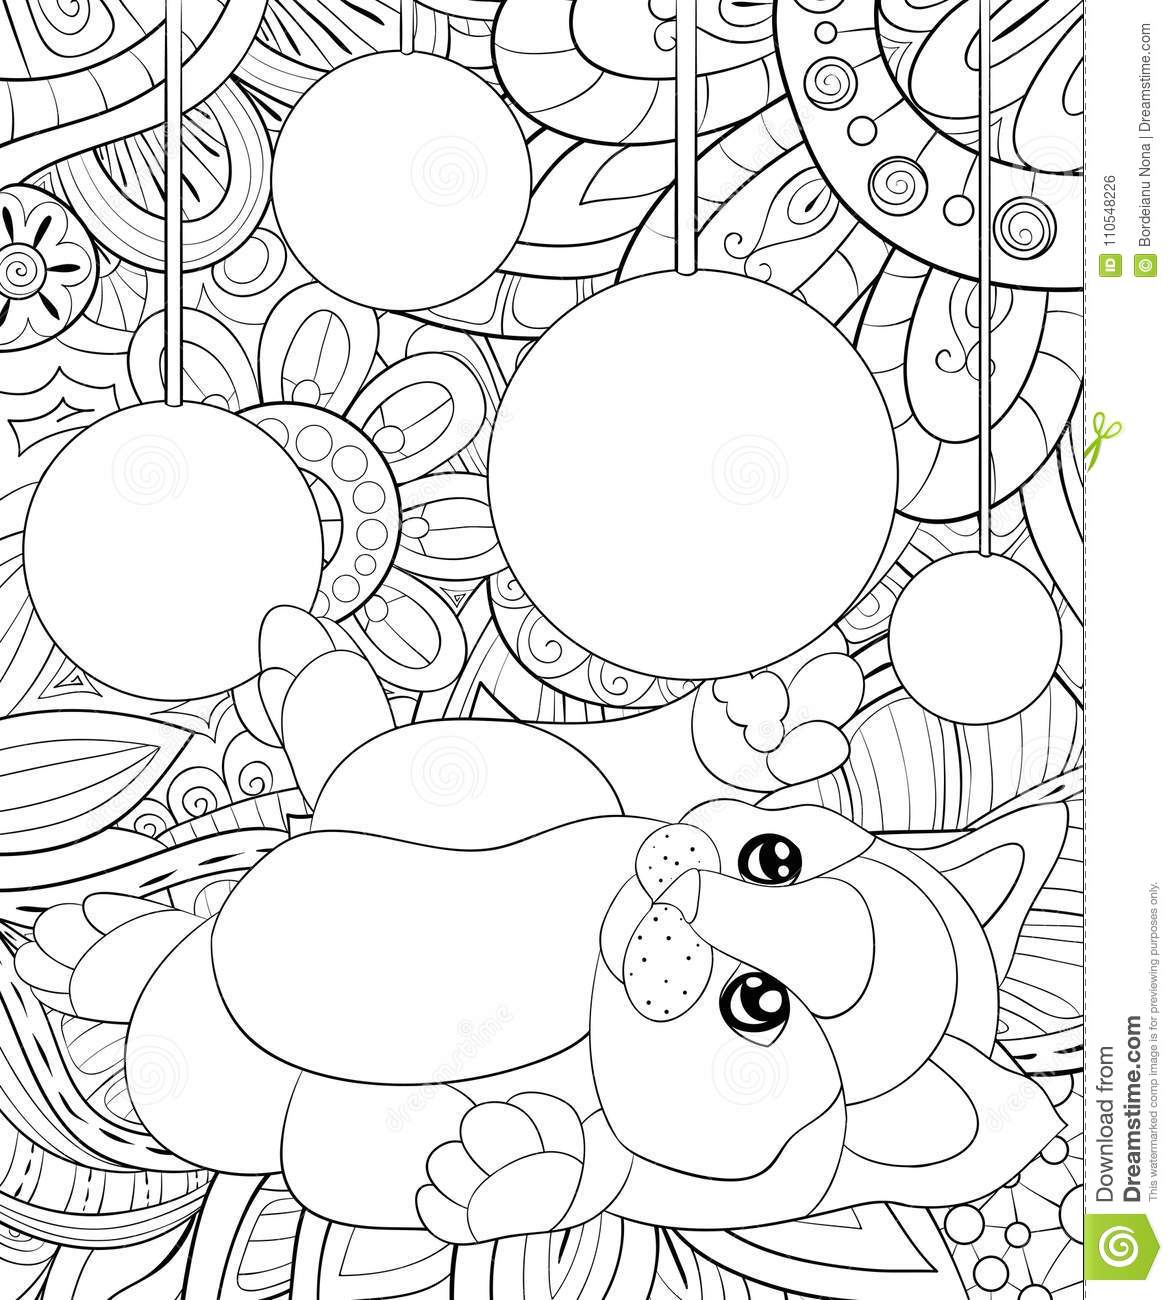 Adult Coloring Bookpage A Cute Playing With Ball Cat On The Floral Background For